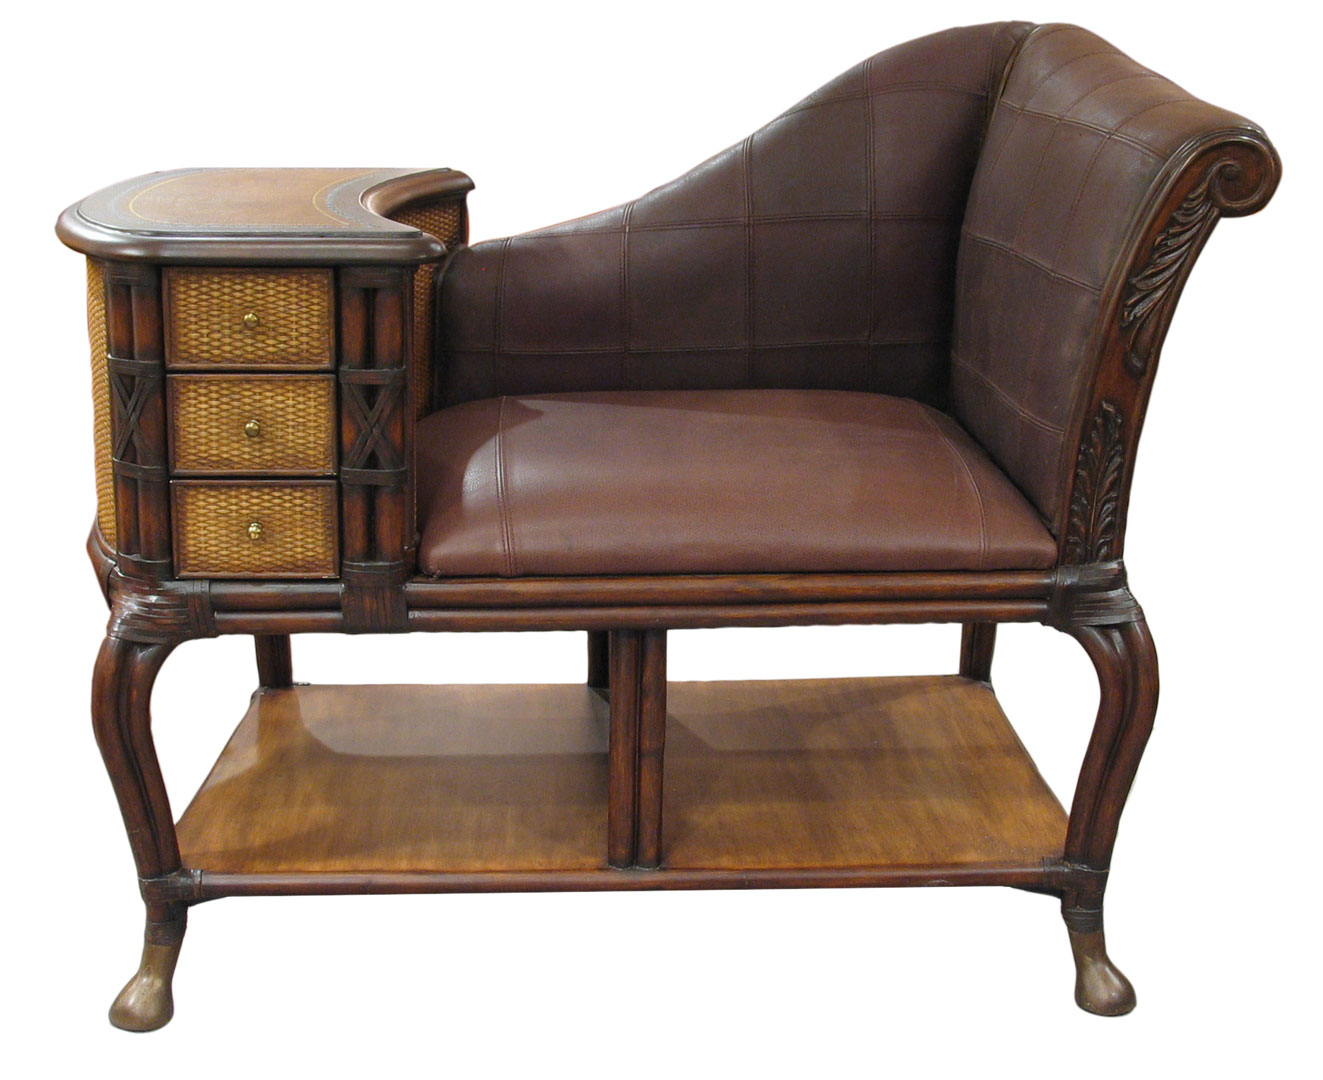 furniture, old and new on Pinterest | Settees, Rococo and ...